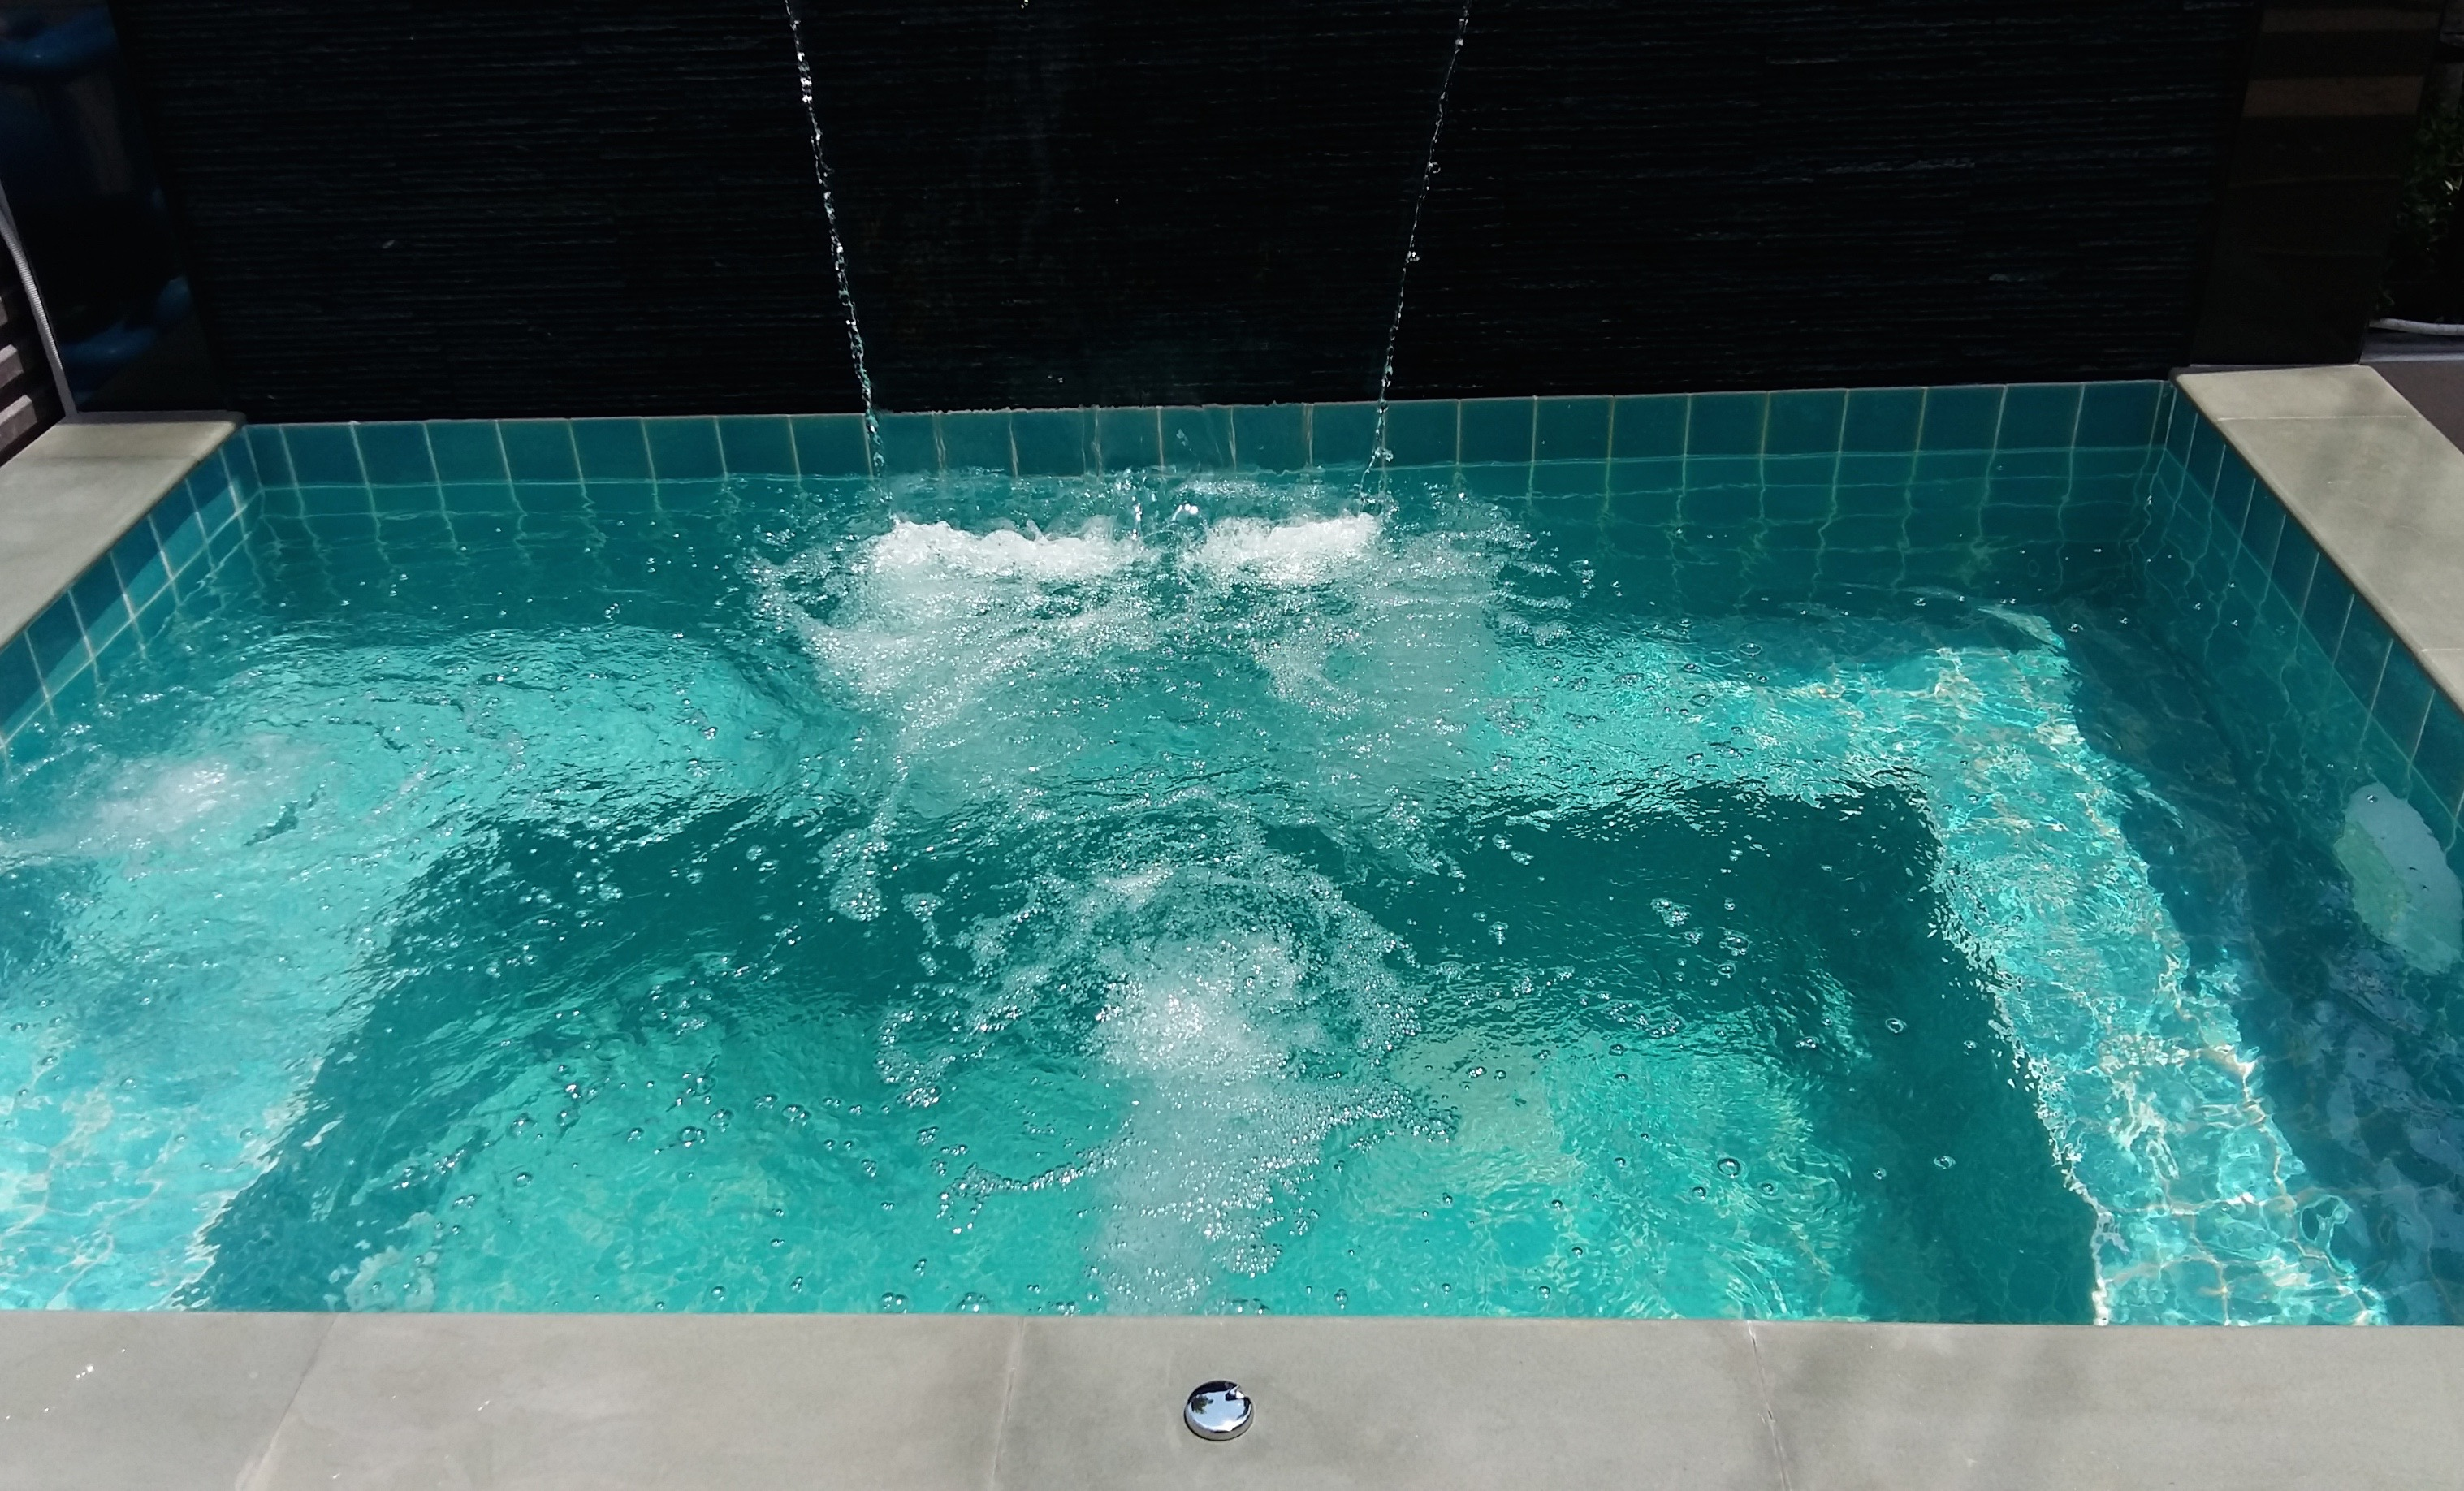 Jacuzzi Pool Main Drain Pool Leaking 12 Cm Per Day Page 2 Swimming Pool Forum